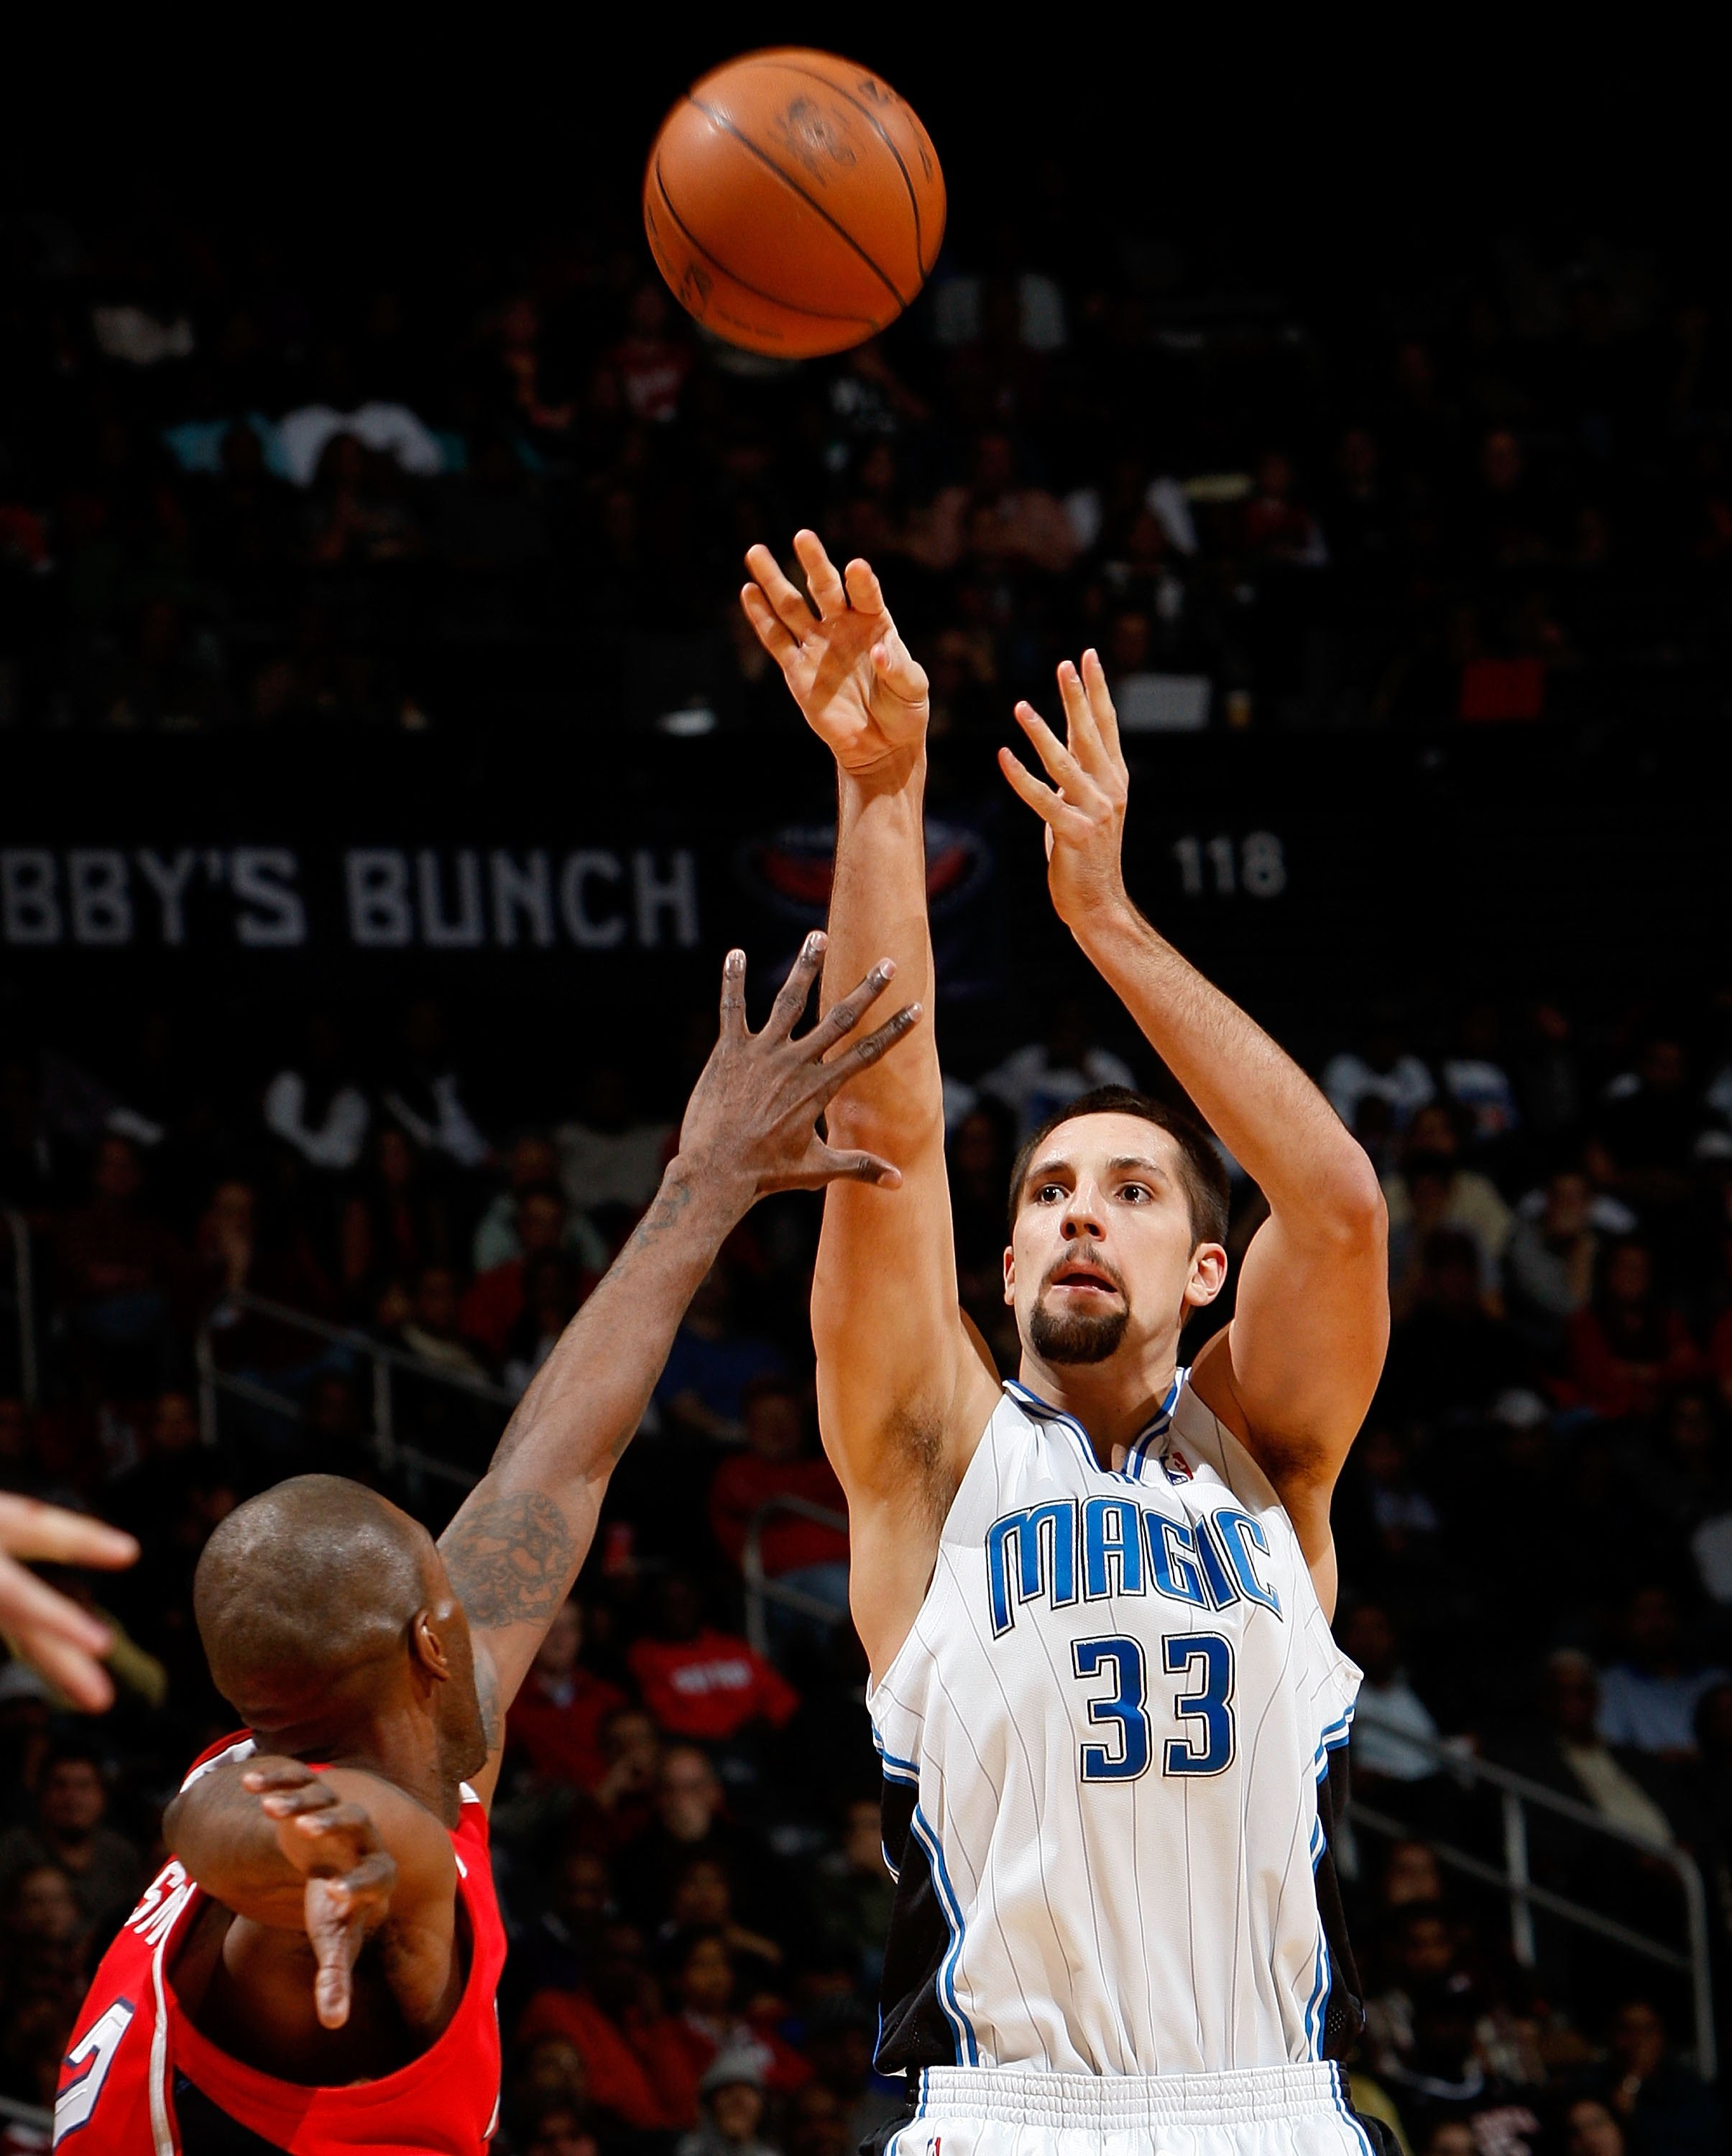 ATLANTA - NOVEMBER 26:  Ryan Anderson #33 of the Orlando Magic against the Atlanta Hawks at Philips Arena on November 26, 2009 in Atlanta, Georgia.  NOTE TO USER: User expressly acknowledges and agrees that, by downloading and/or using this Photograph, Us